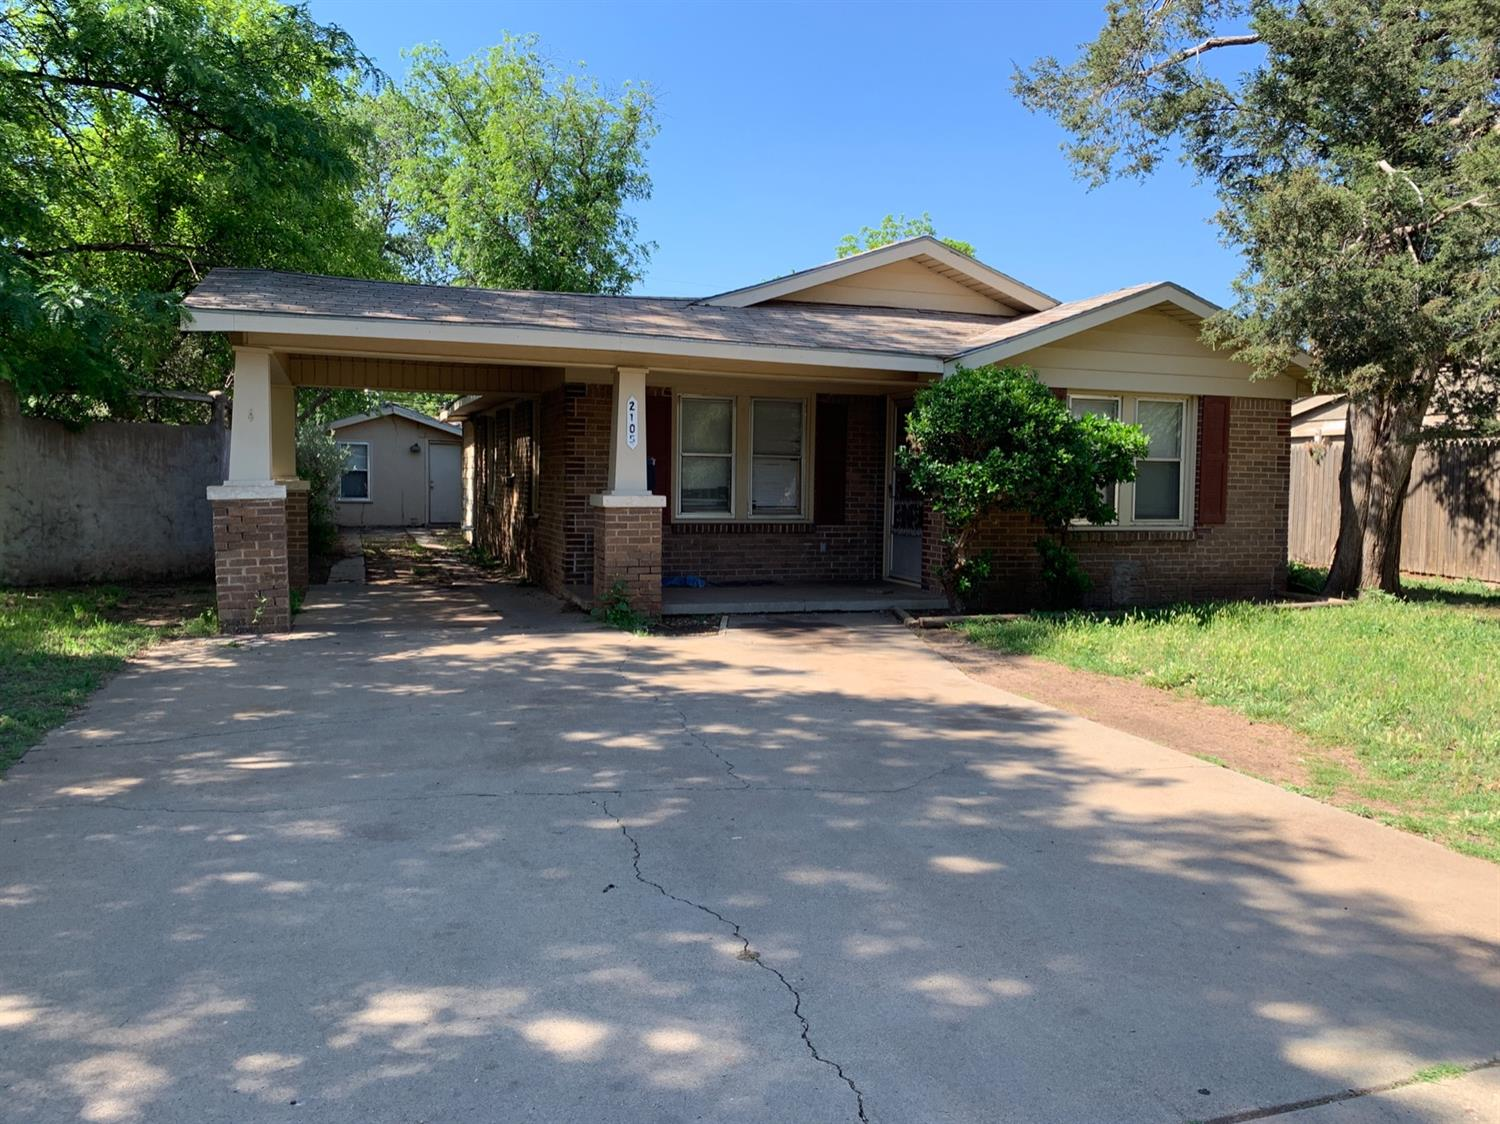 2105 26th Street, Lubbock, Texas